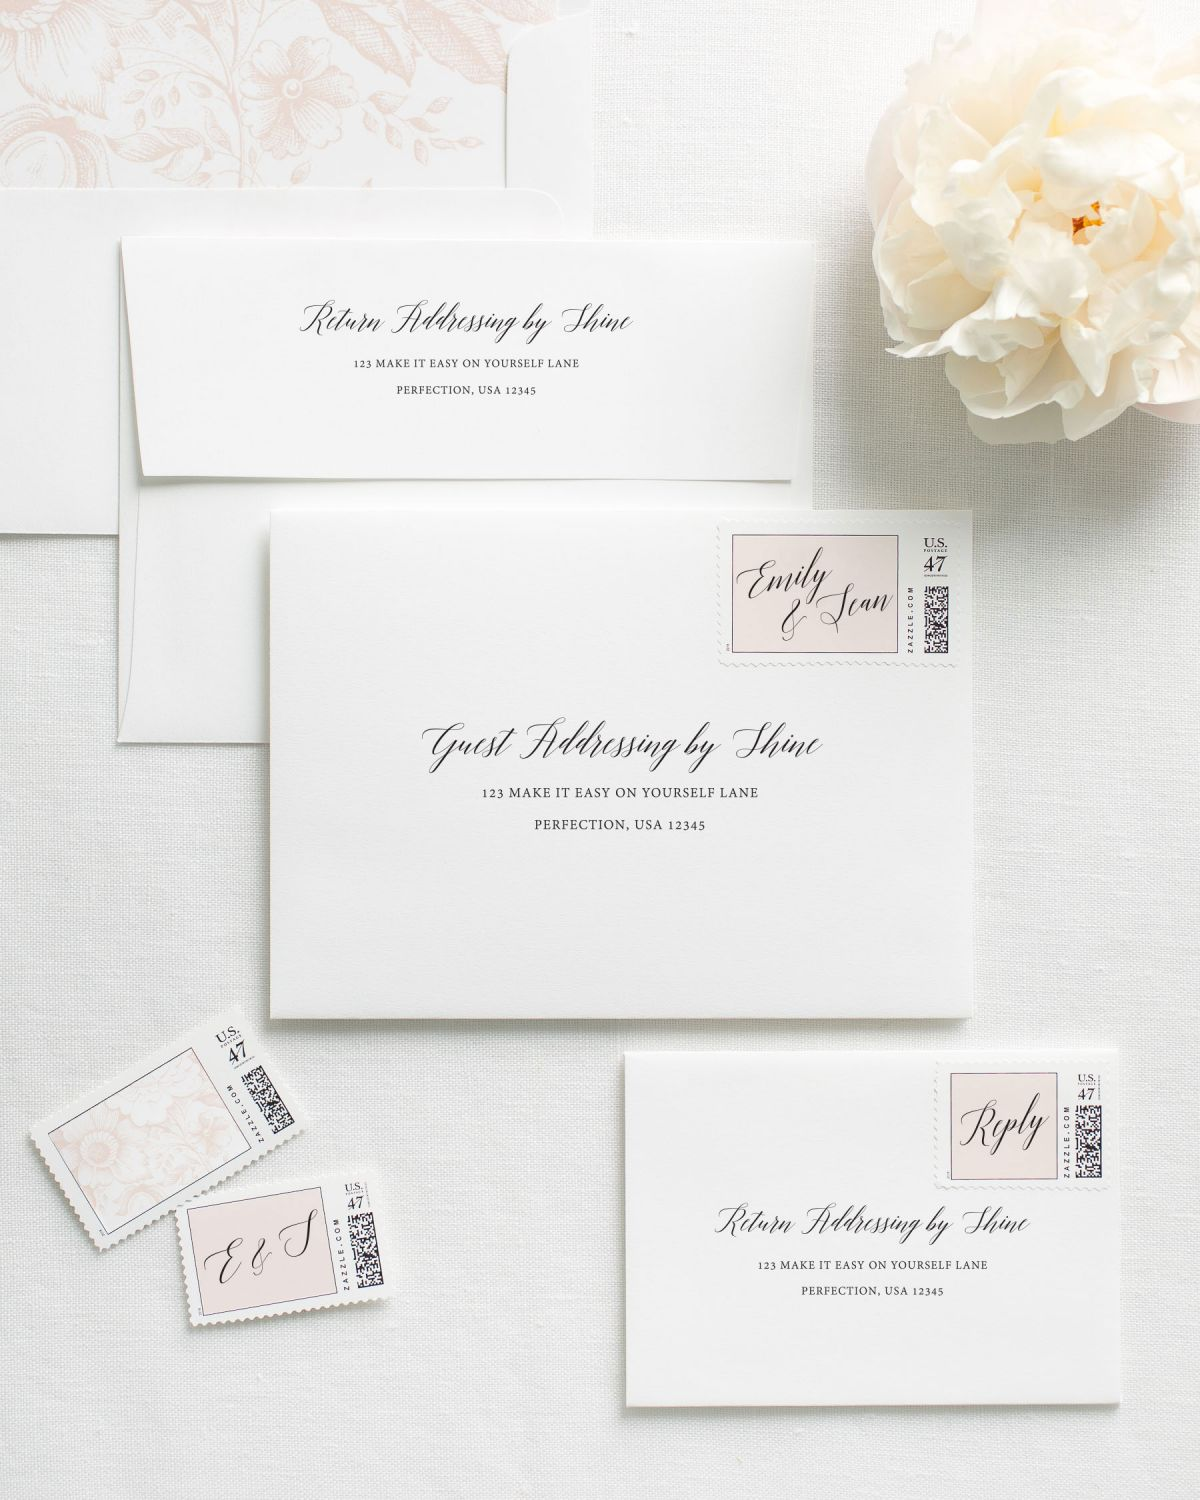 Envelopes with Addressing Printing for Wedding Invitations